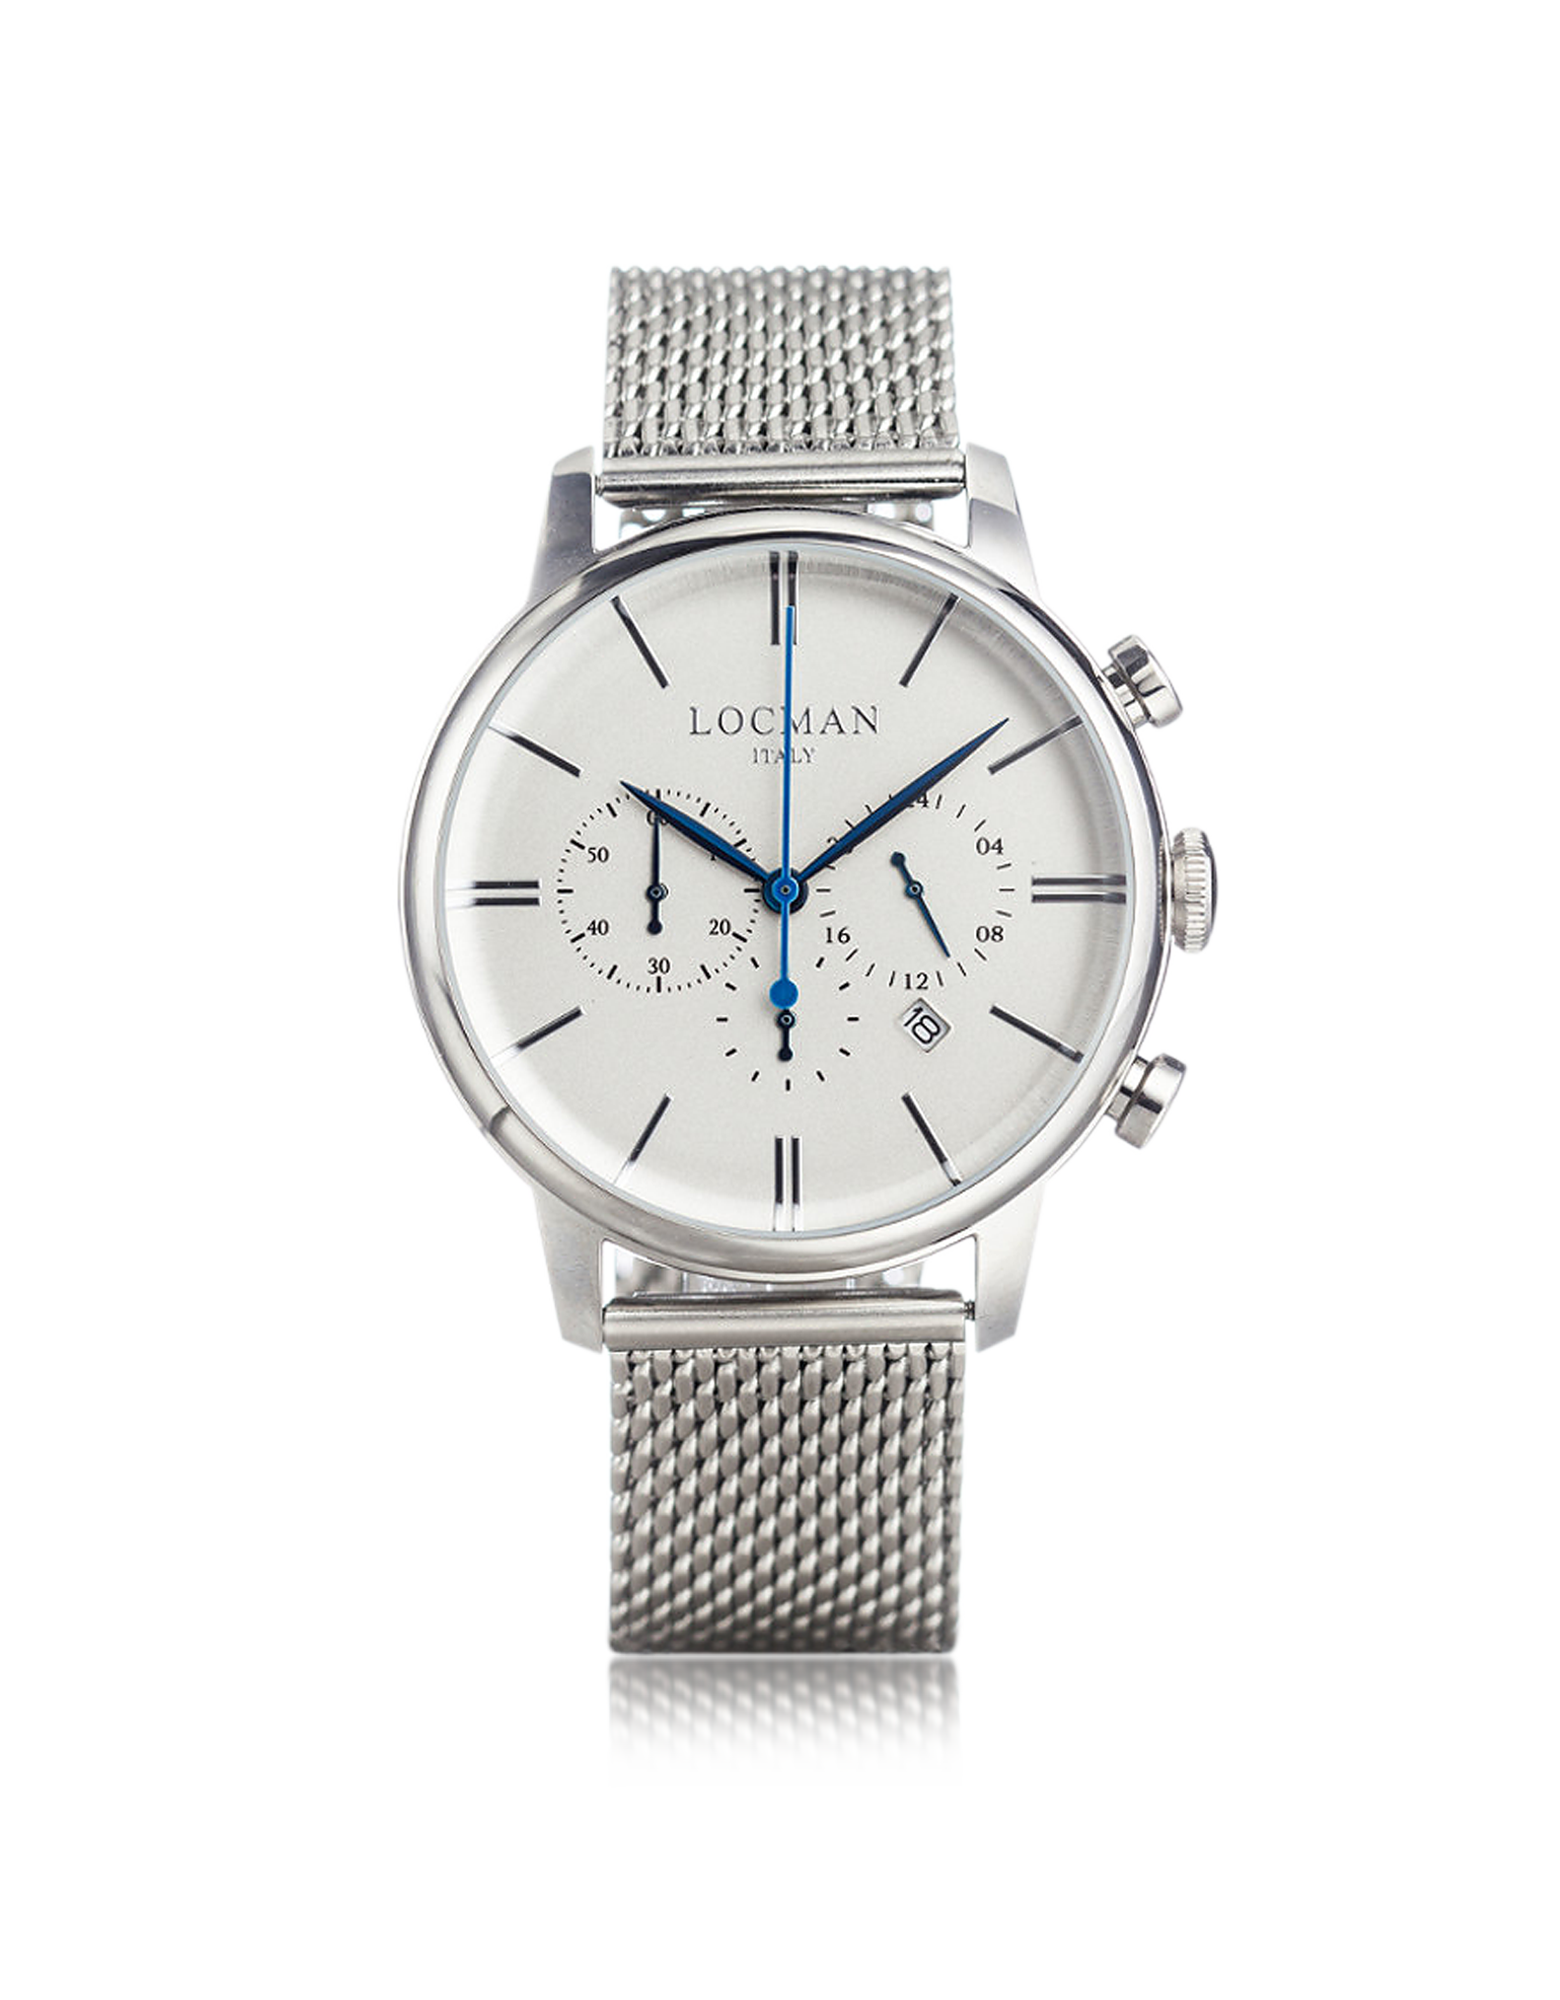 Image of 1960 Silver Stainless Steel Men's Chronograph Watch